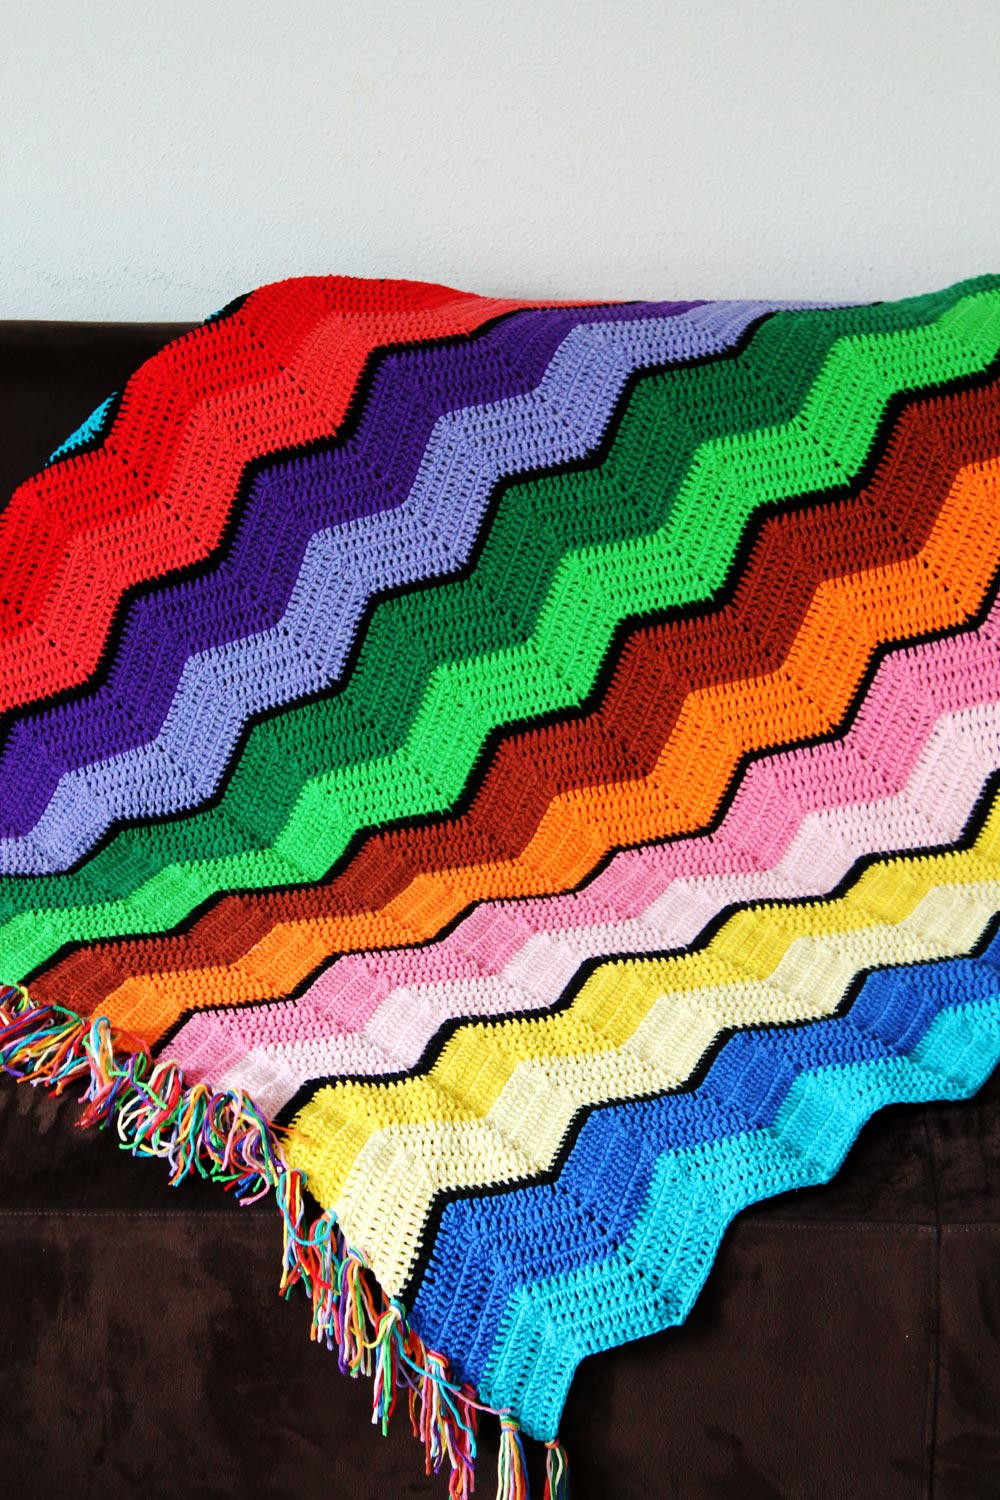 Crochet Afghan Patterns Fresh 51 Free Crochet Blanket Patterns for Beginners Of Crochet Afghan Patterns Best Of Pdf Pattern Crocheted Baby Afghan Car Seat Size and